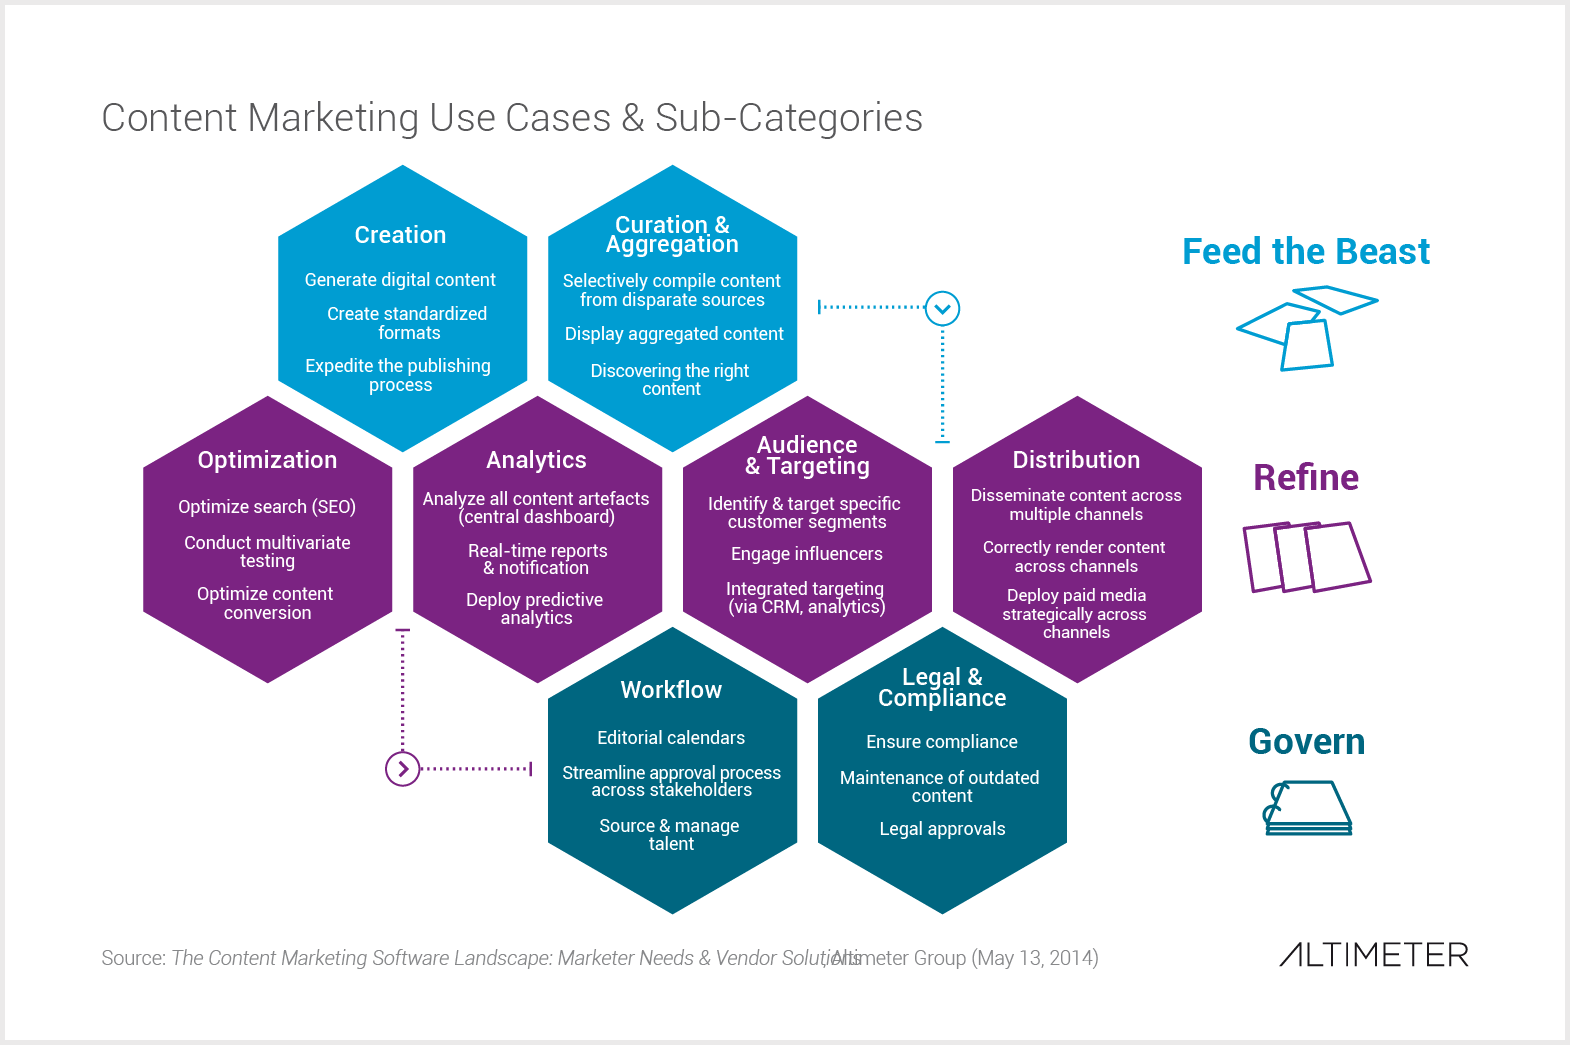 Content Marketing Use Cases & Sub-Categories